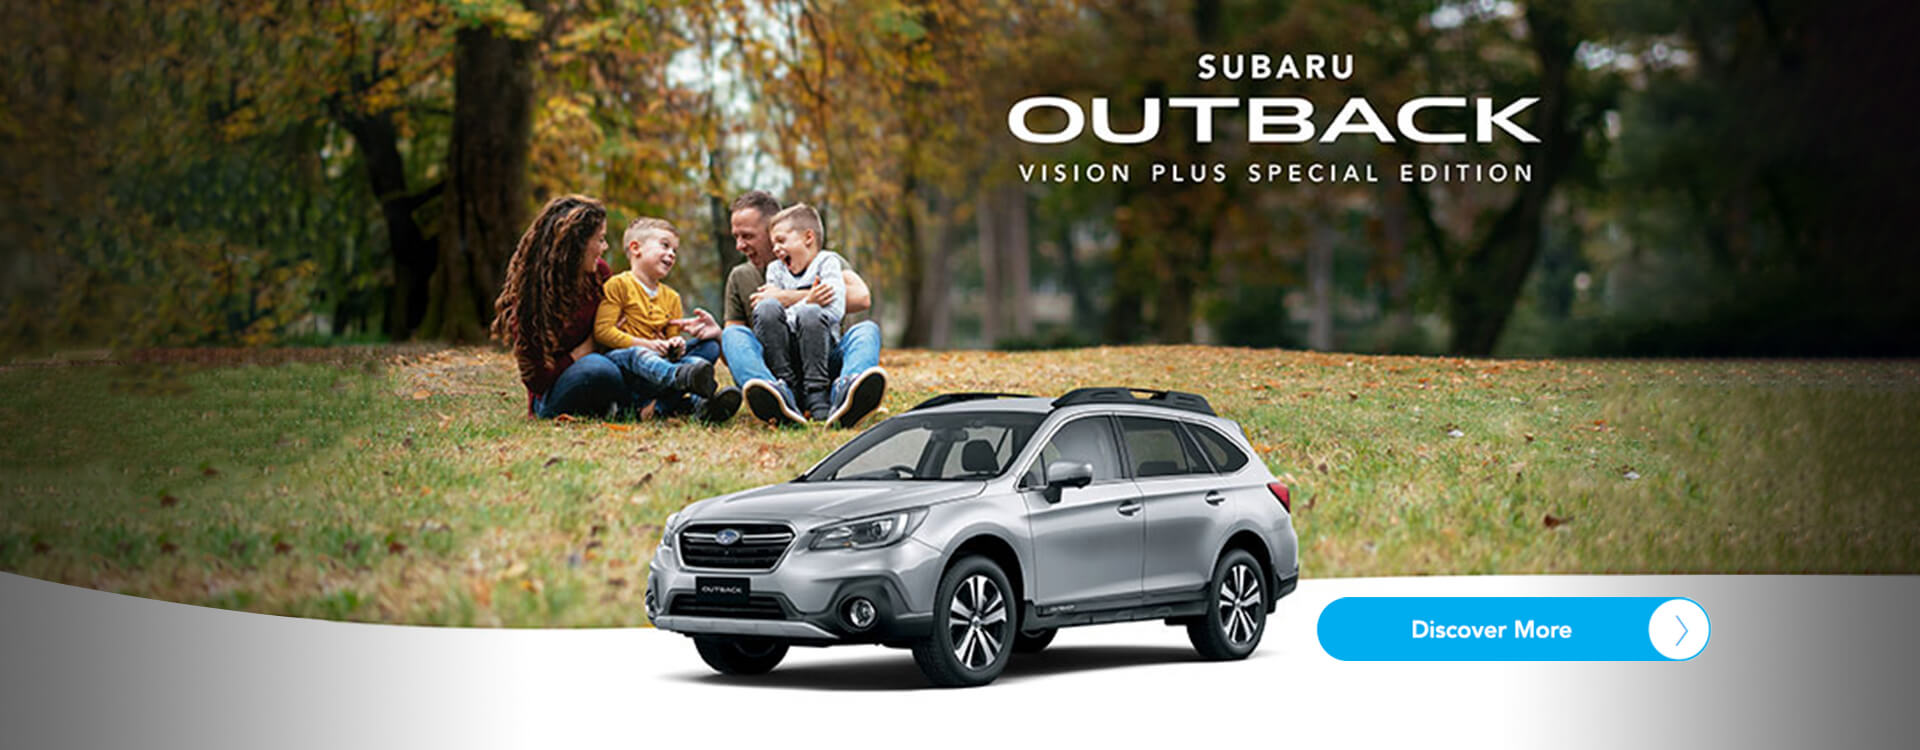 Subaru Outback Vision Plus Special Edition